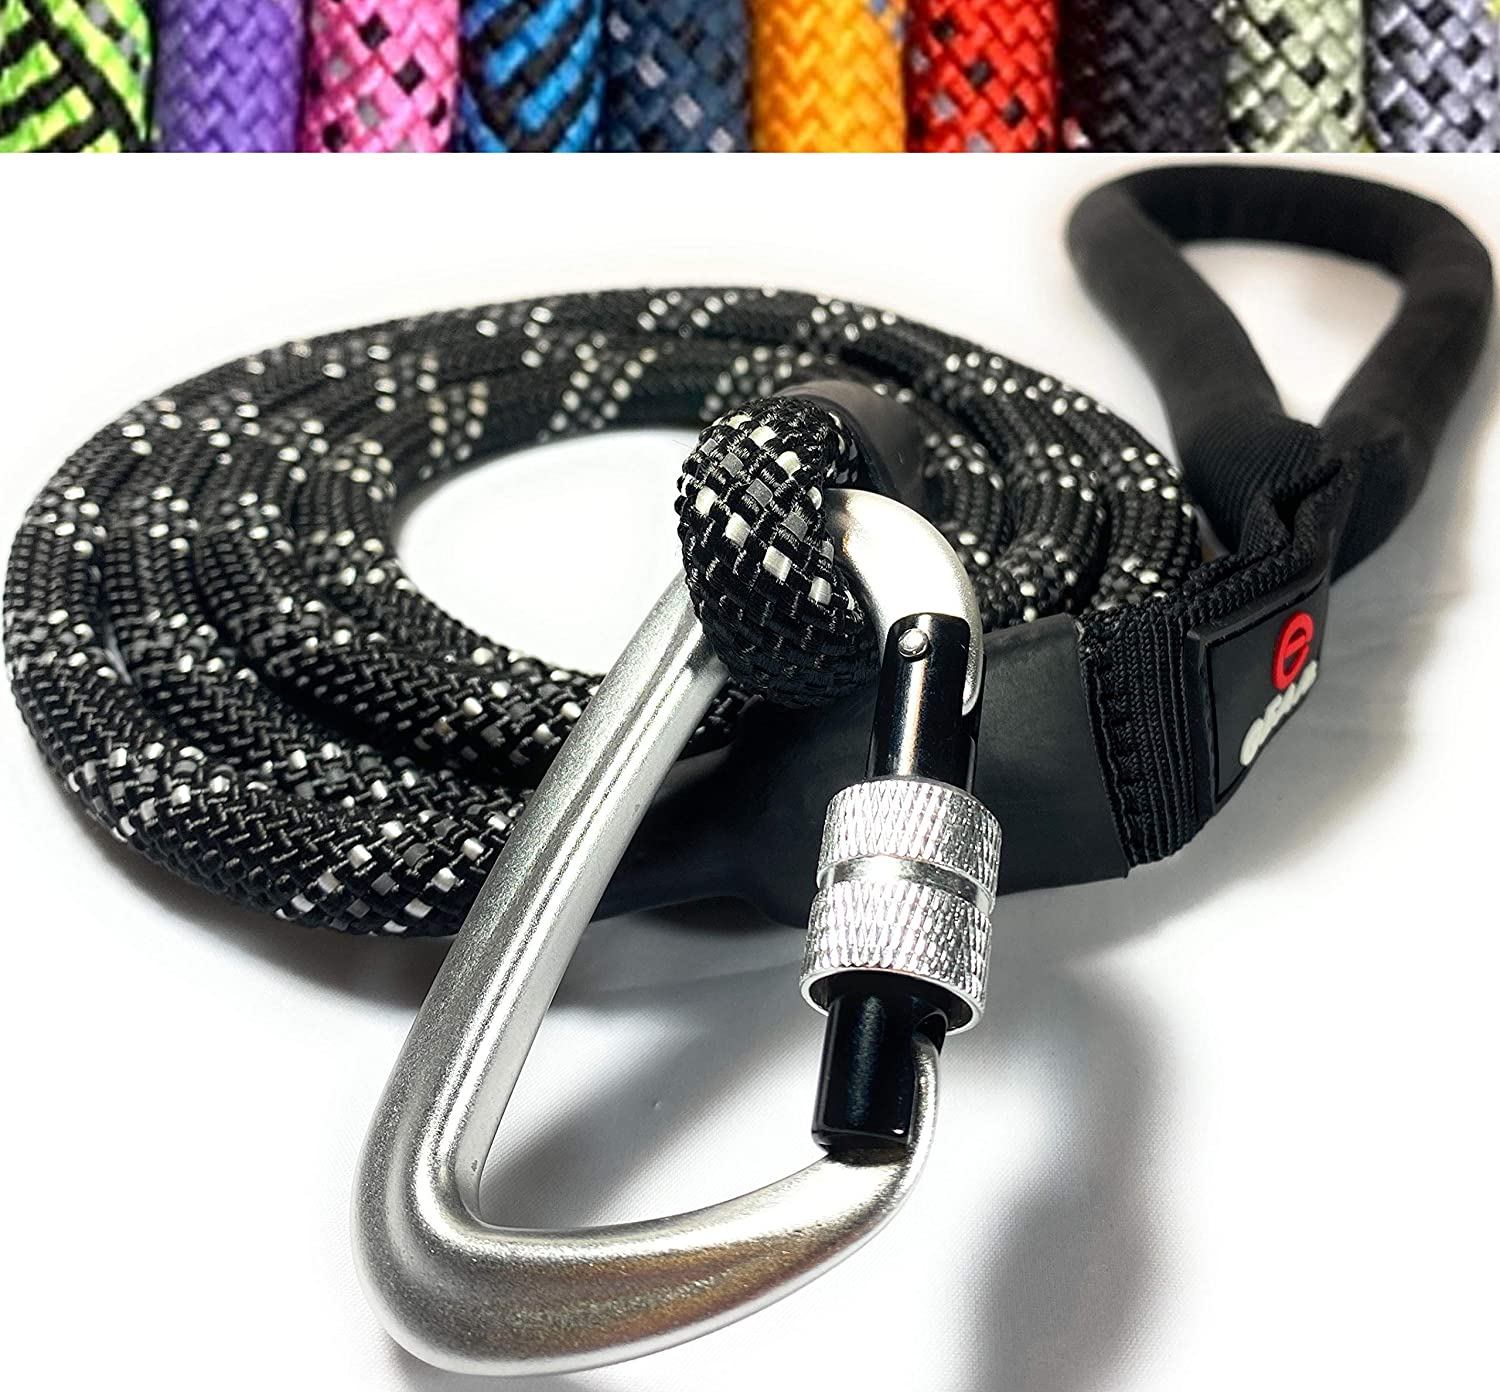 Enthusiast Gear Rope Dog Leash Large Locking for Carabiner Max 59% OFF Industry No. 1 with